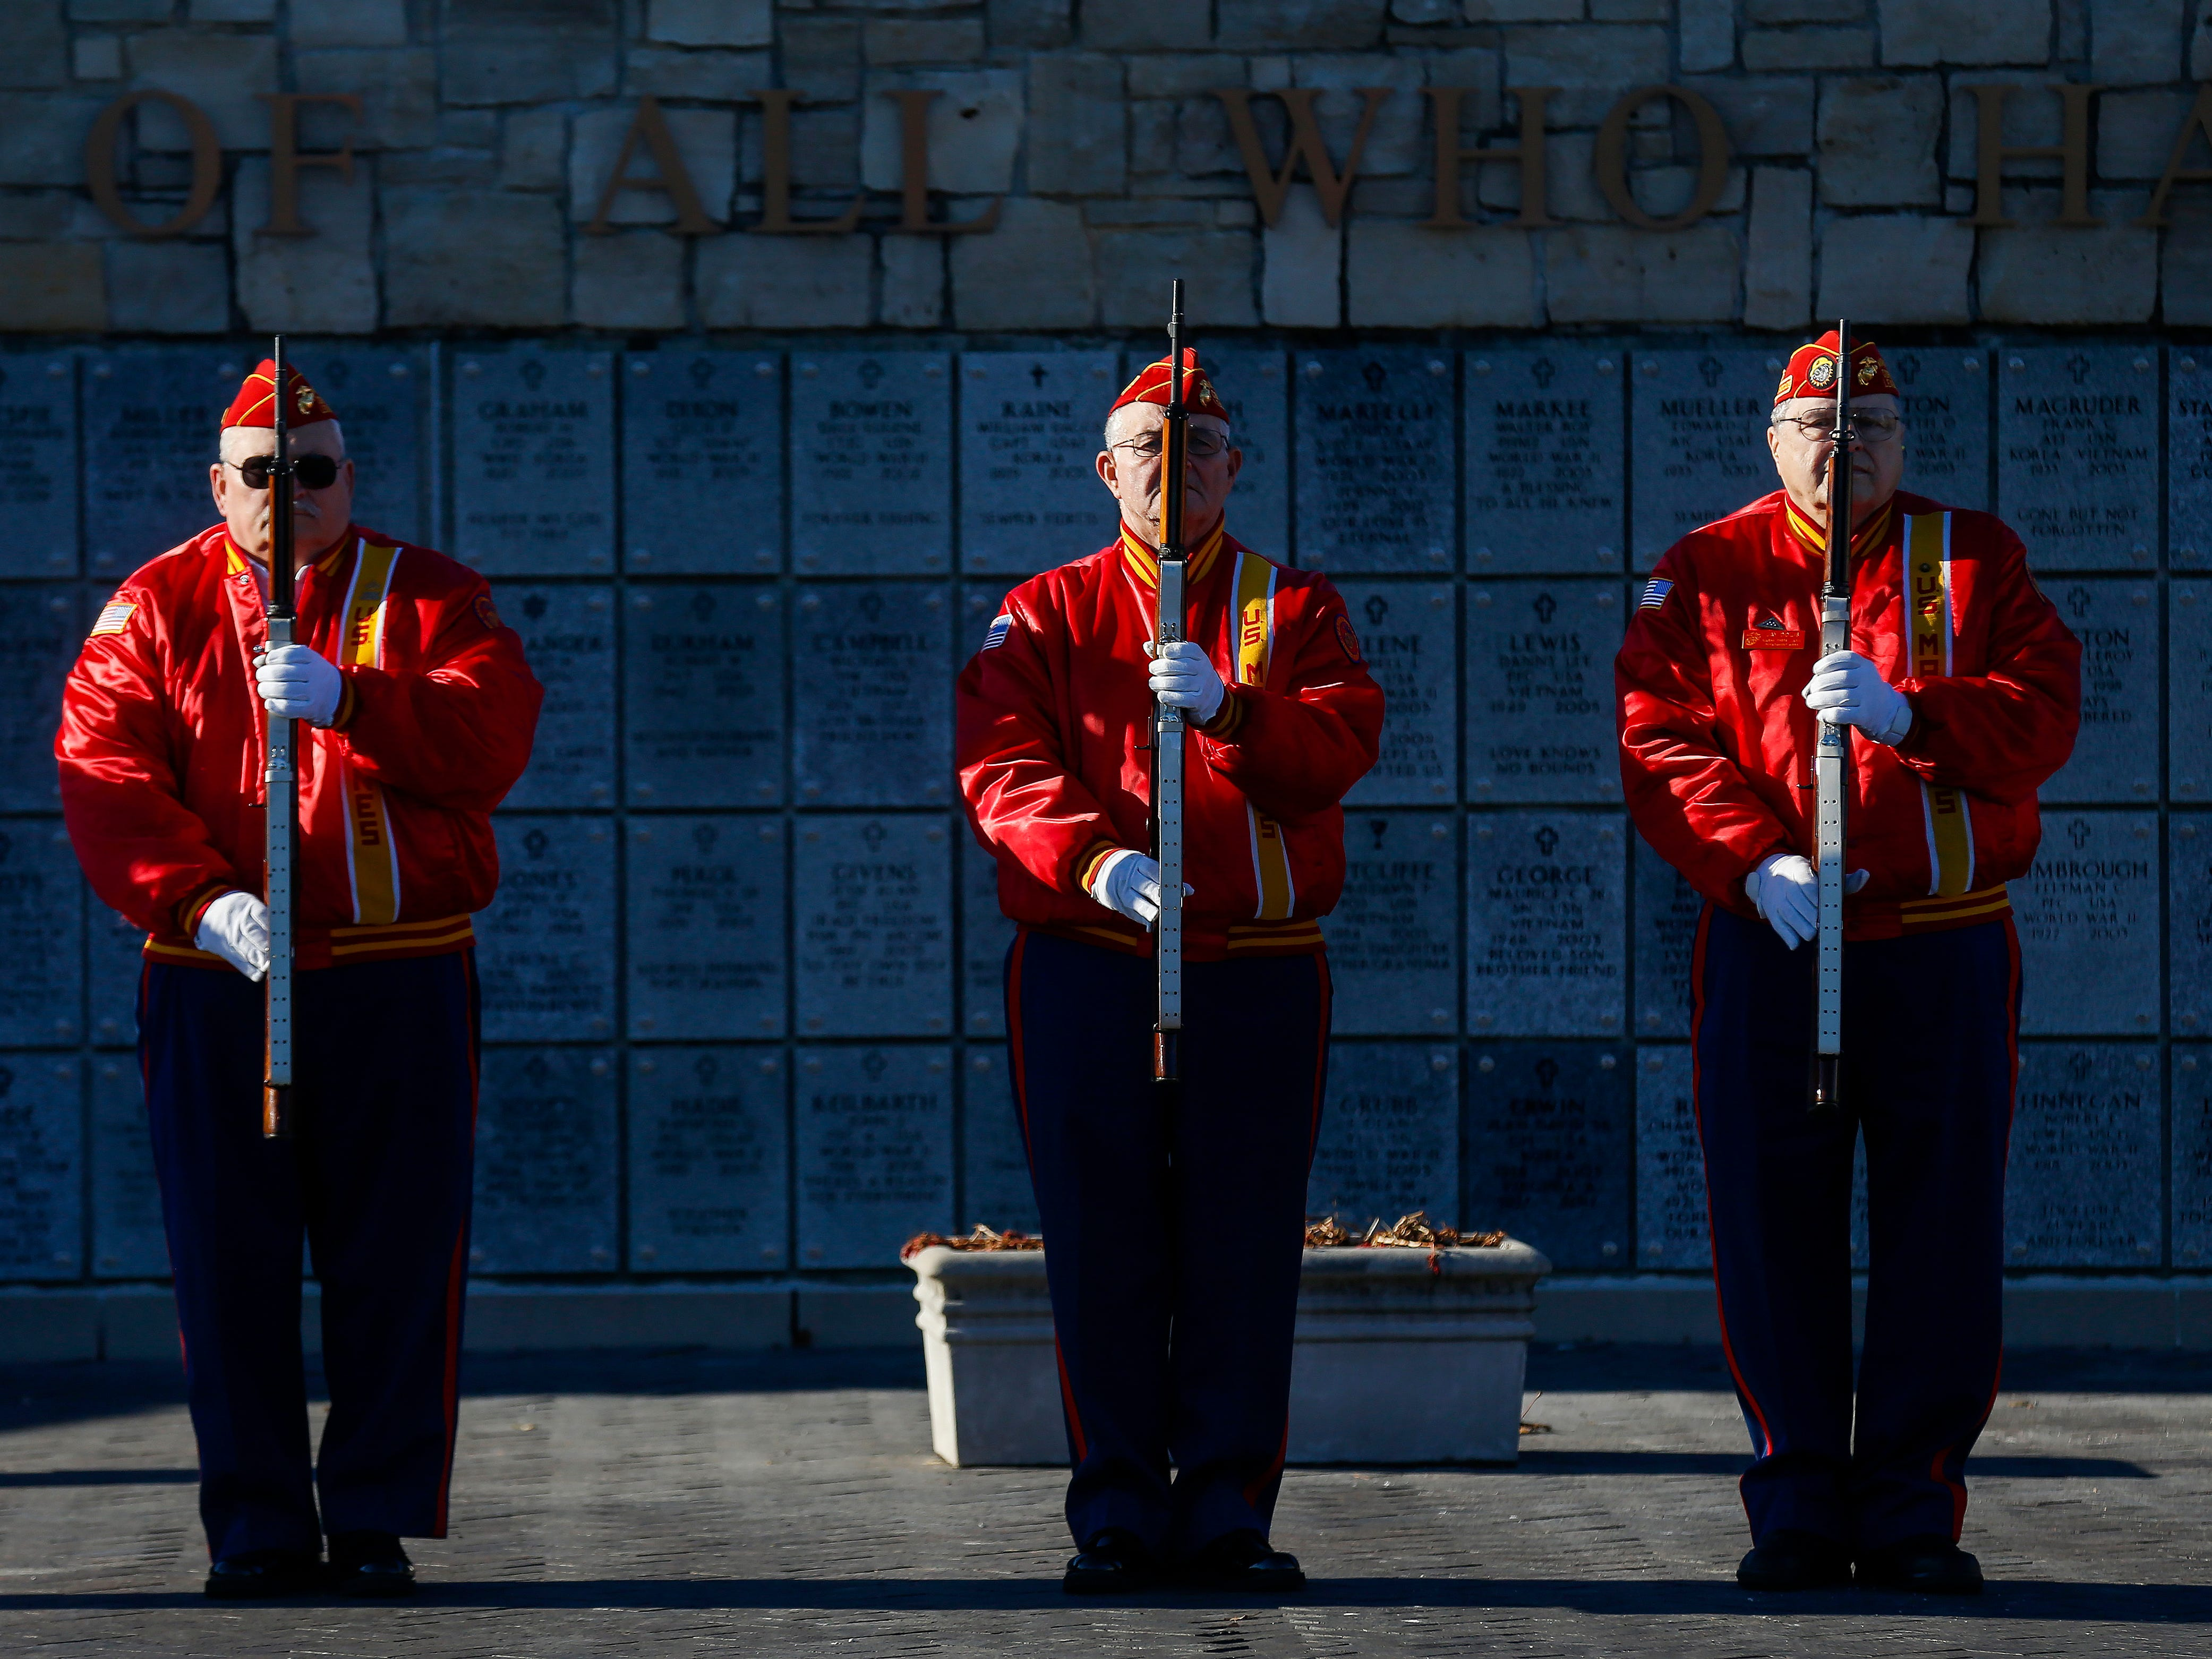 Members of the Marine Corps Memorial Team stand at attention during the funeral of Army veteran Michael Hiers at the Missouri Veterans Cemetery on Friday, Nov. 16, 2018.